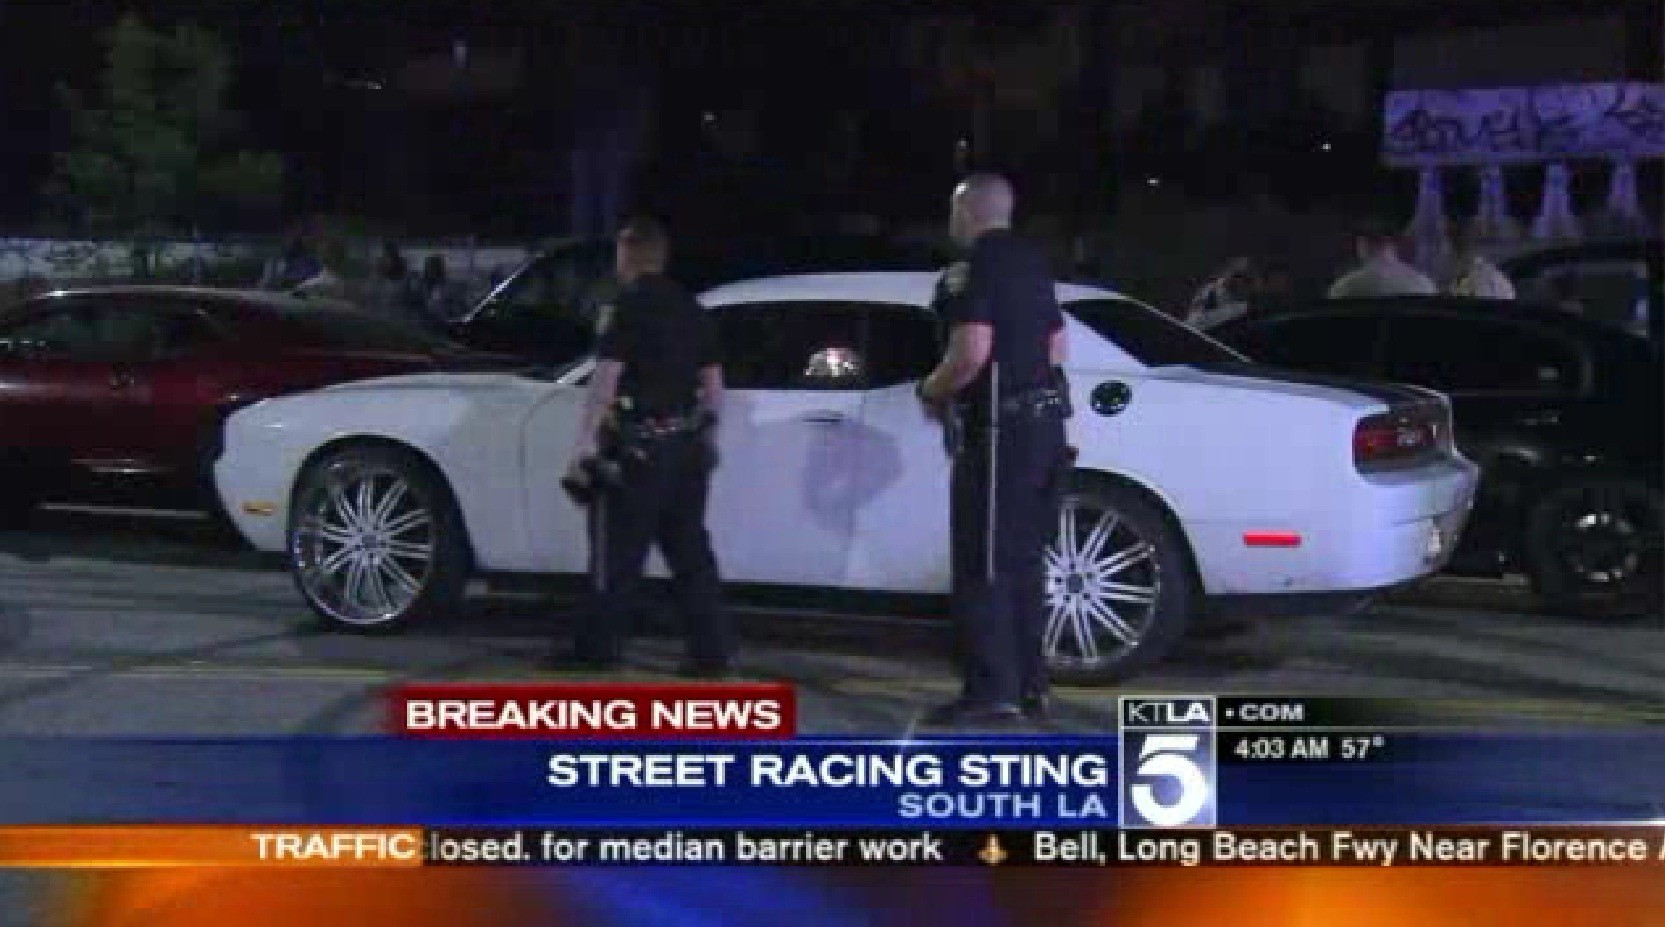 At least 12 arrested in street-racing bust - LA Times